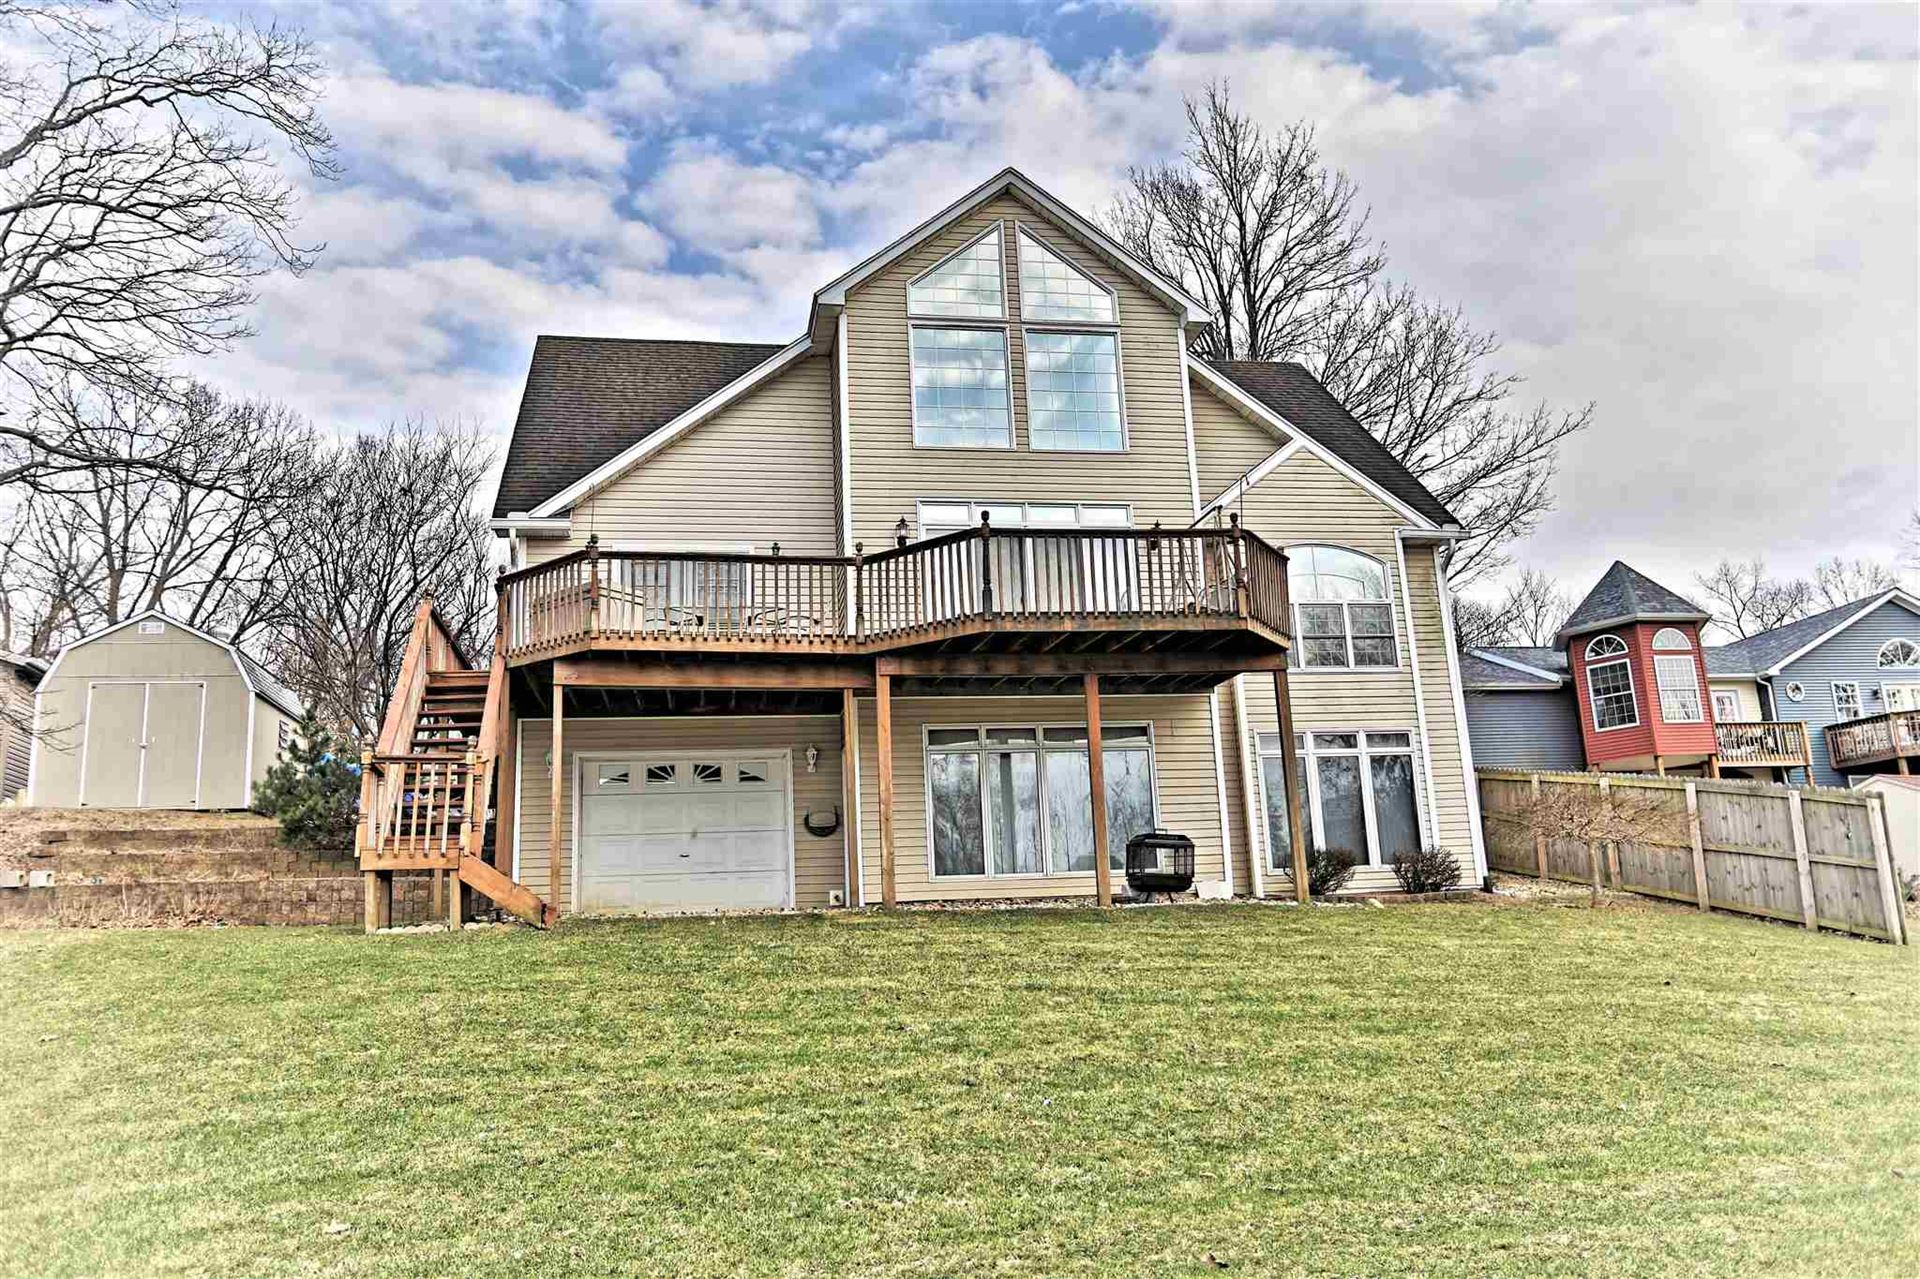 Photo of 158 EMS W17 LN, North Webster, IN 46555 (MLS # 202006917)